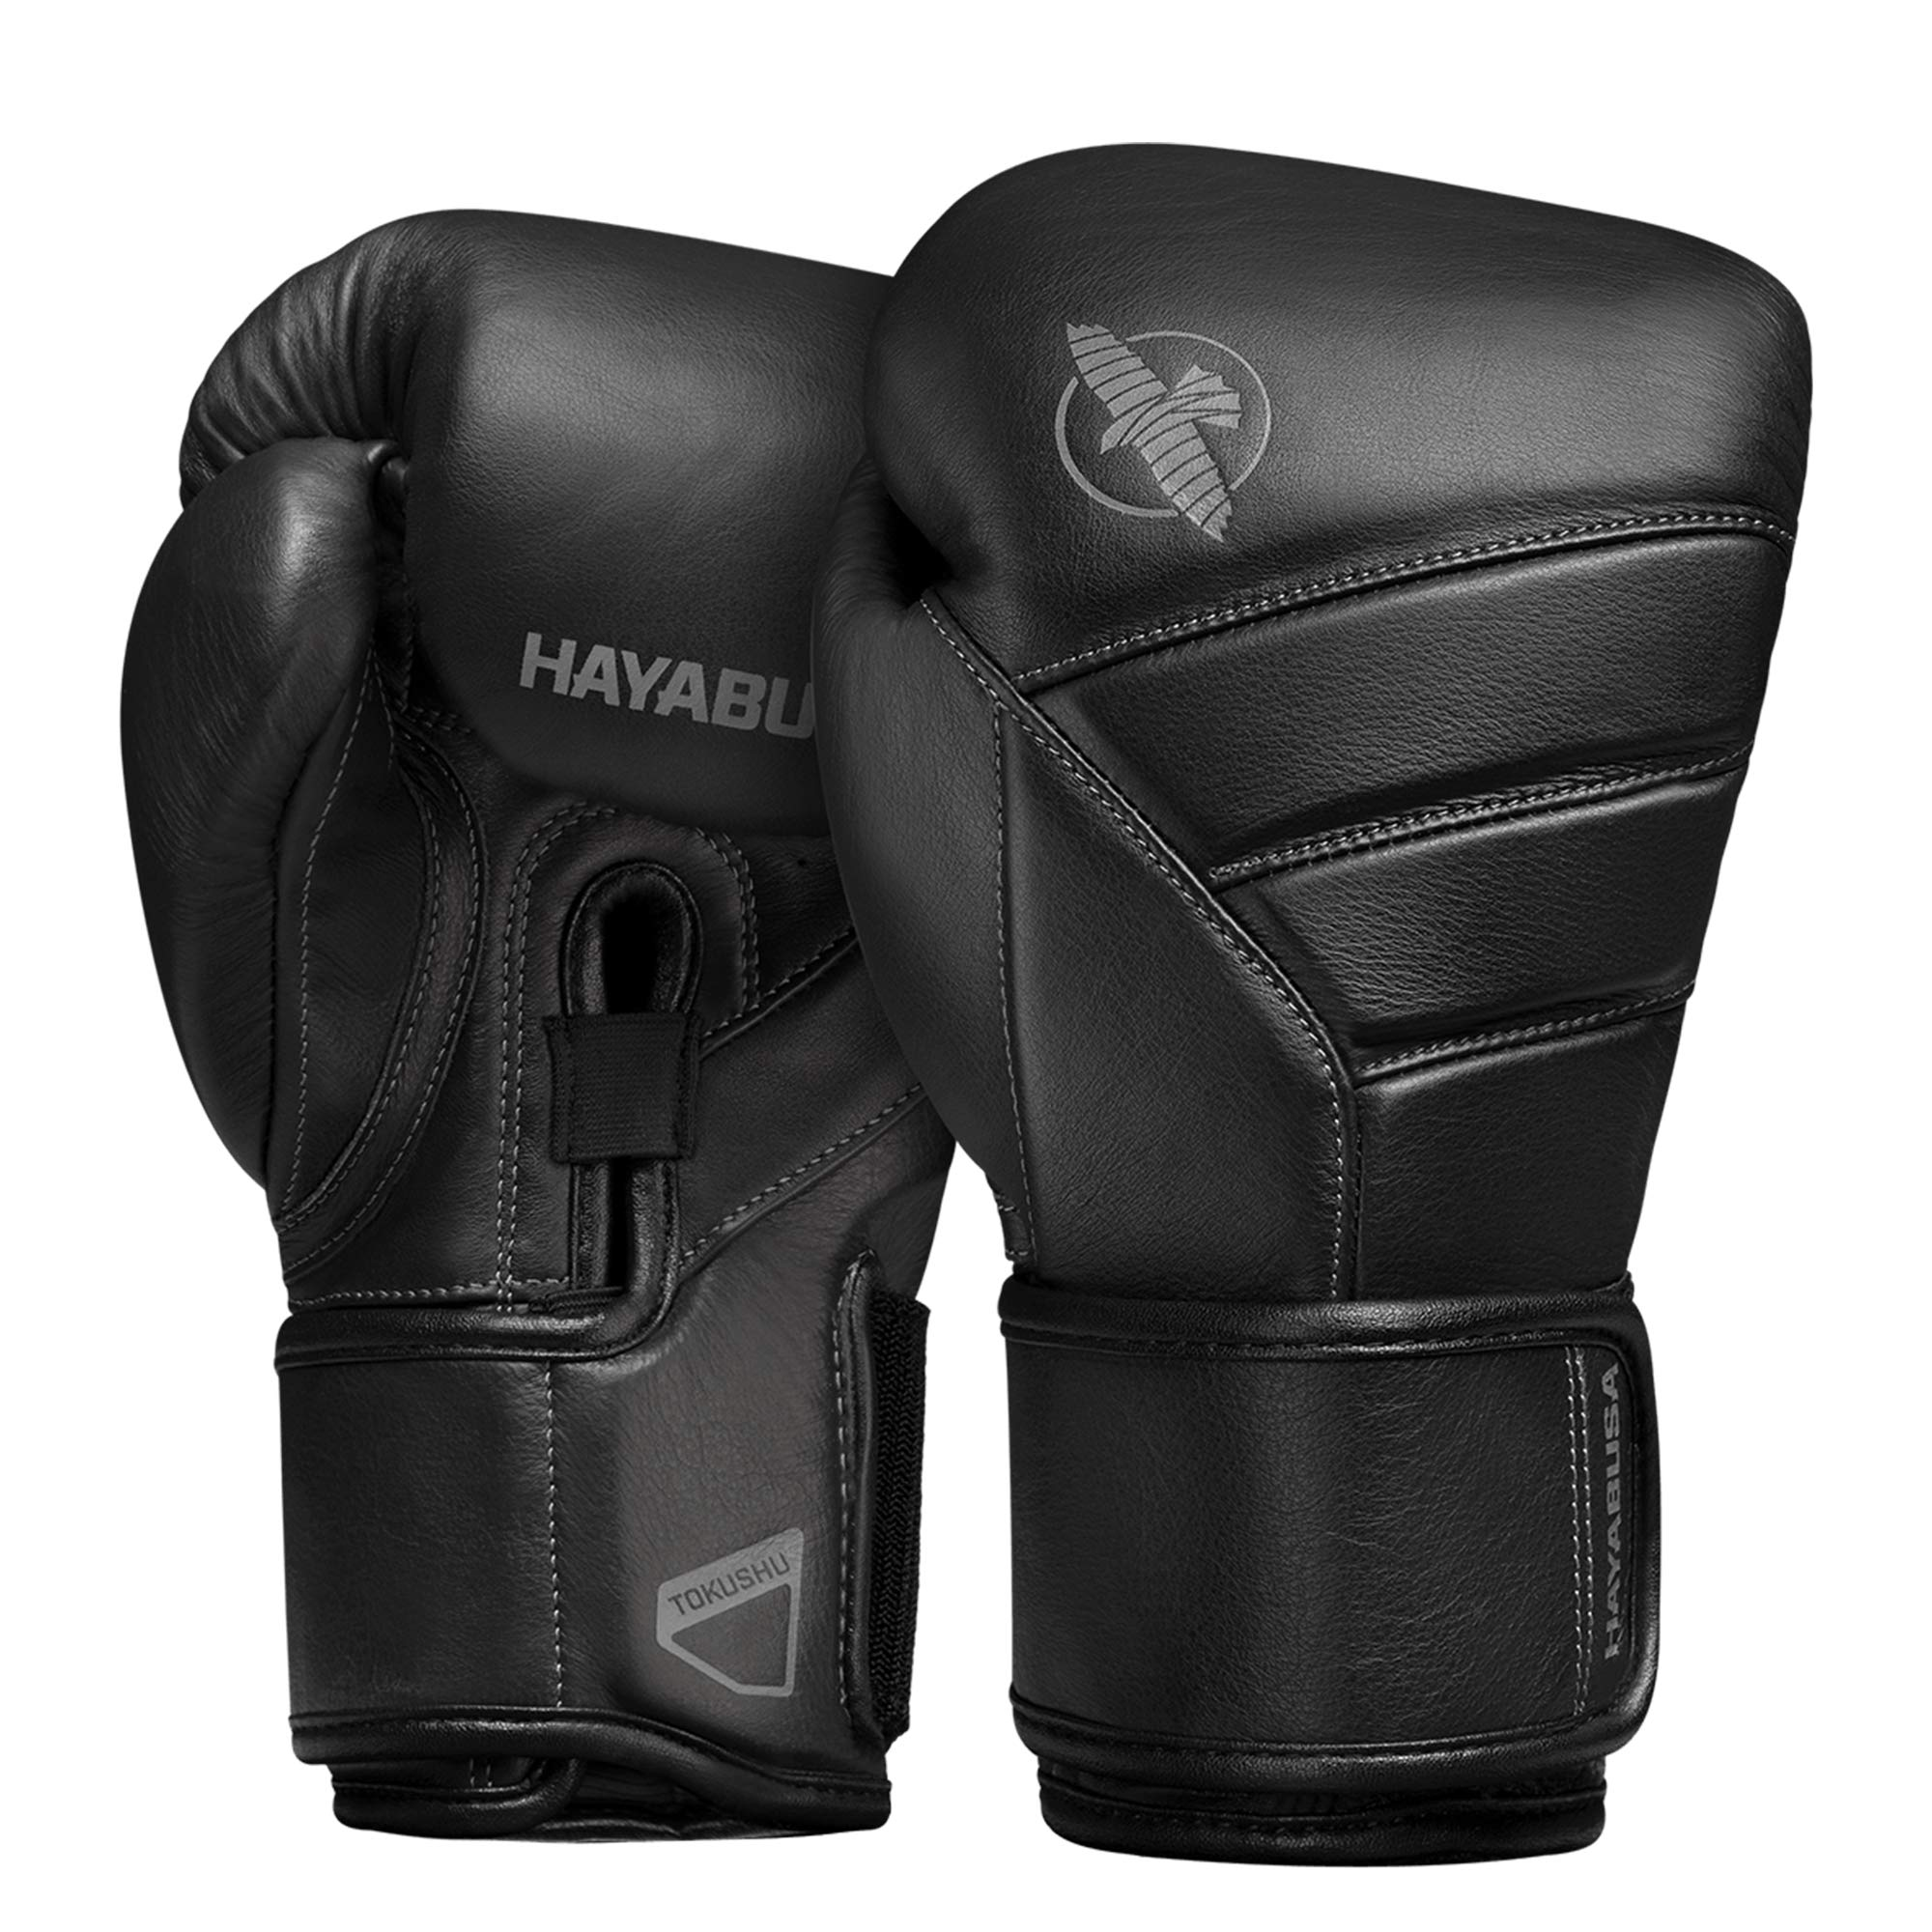 Hayabusa T3 Kanpeki Boxing Gloves (12oz)